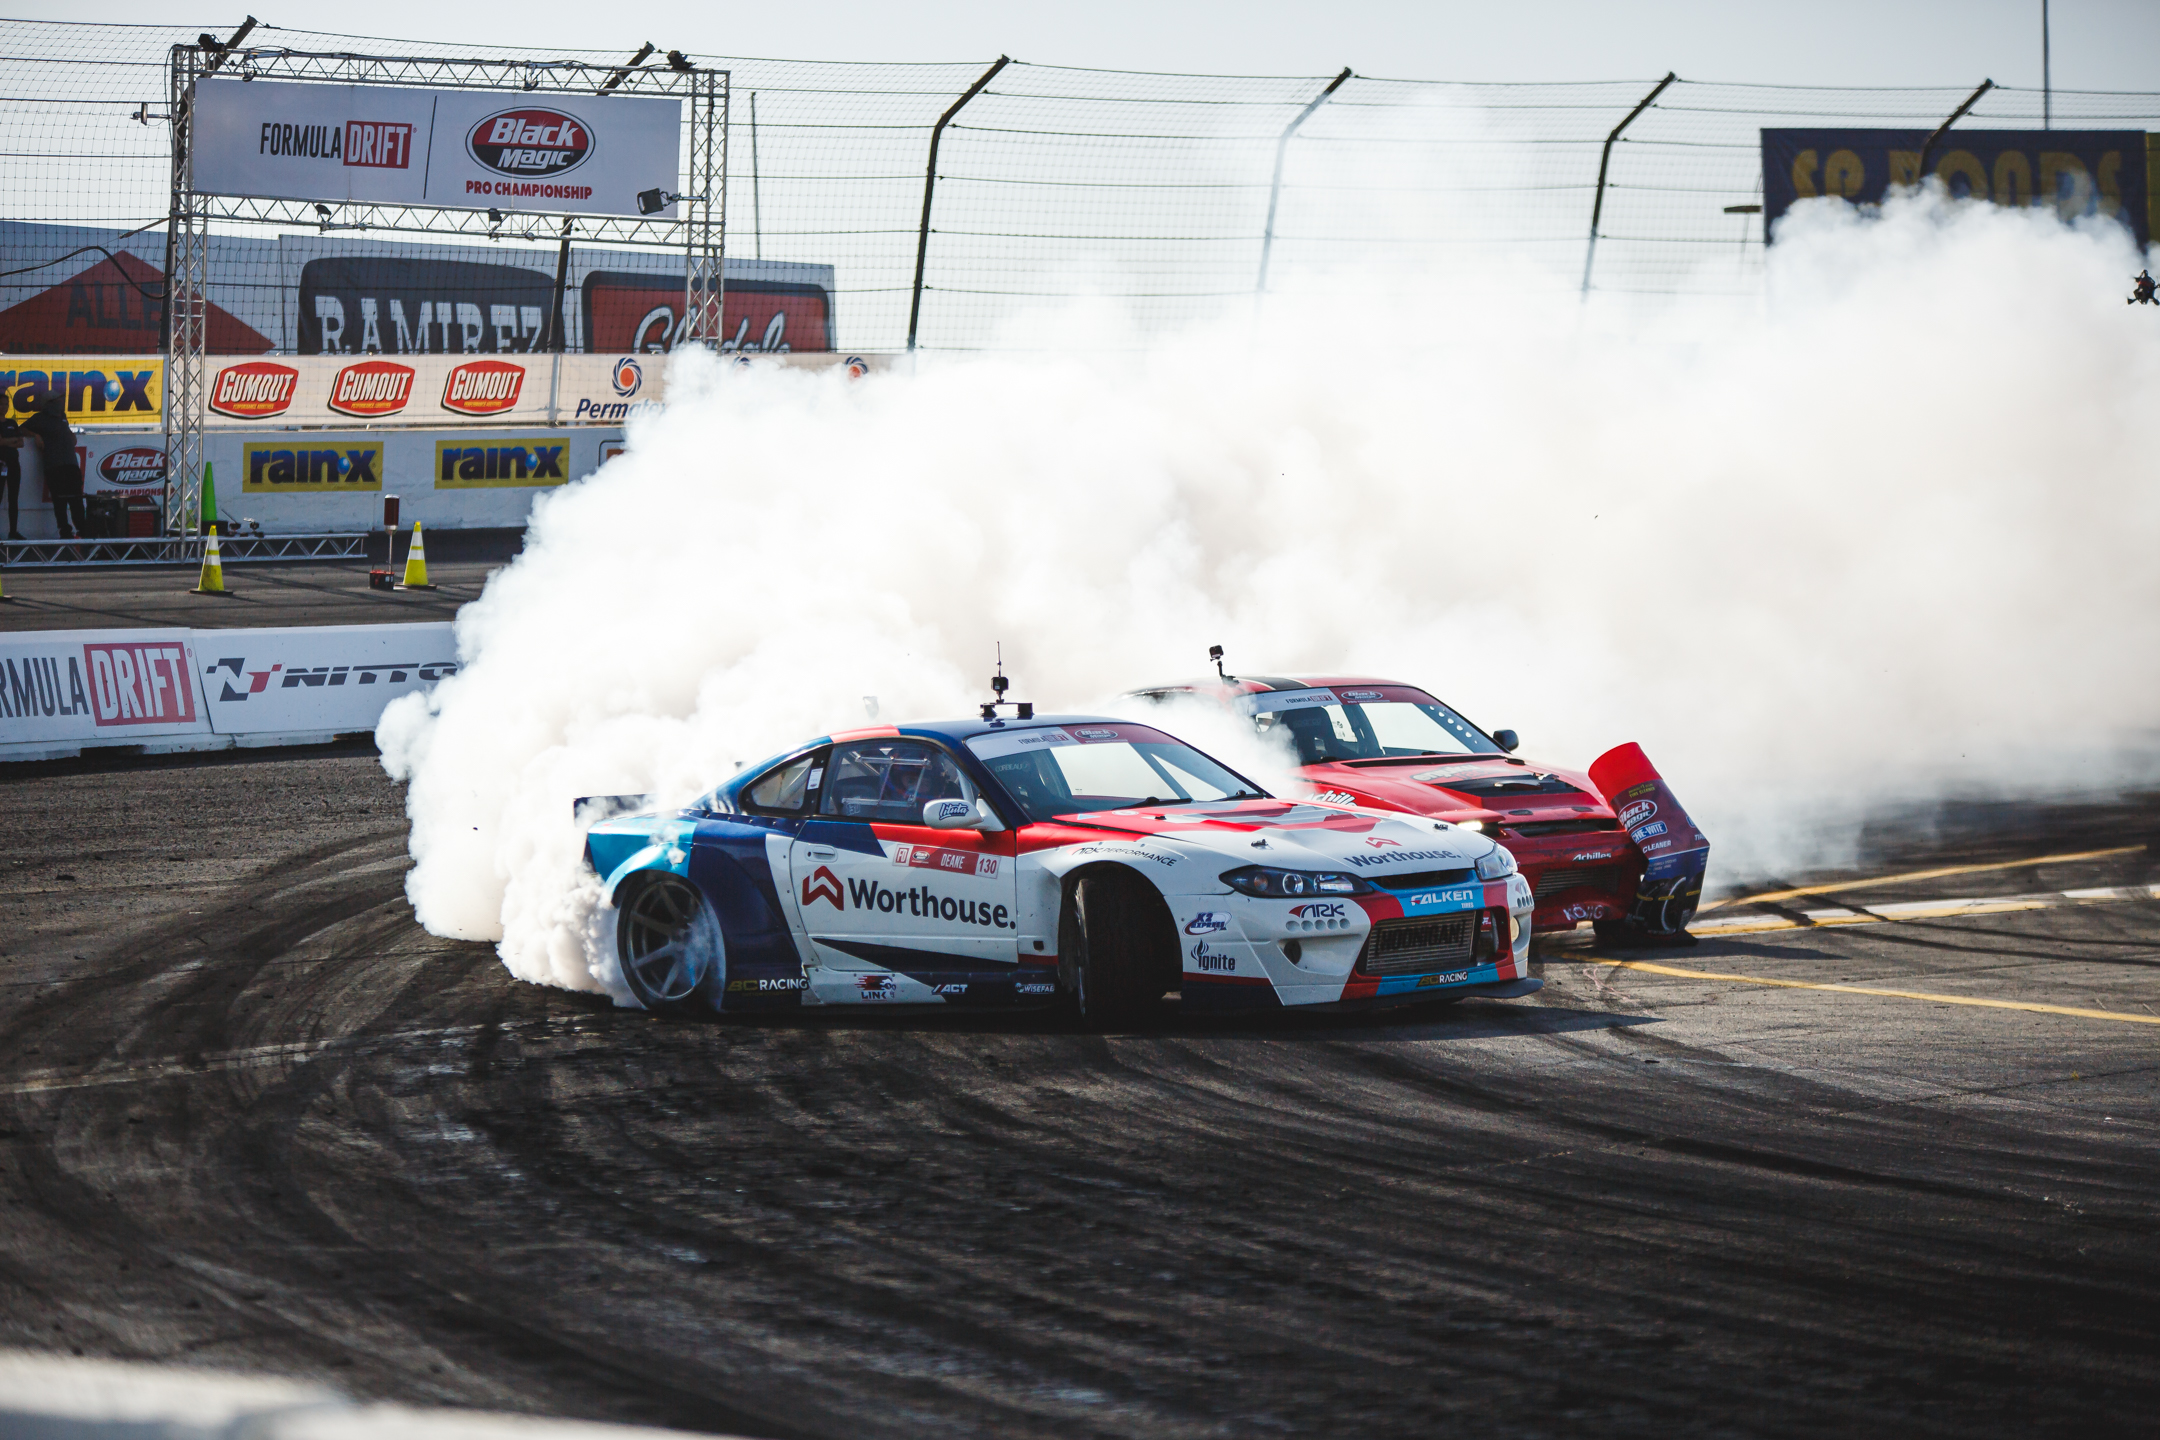 Three-time consecutive Formula Drift champion: James Deane